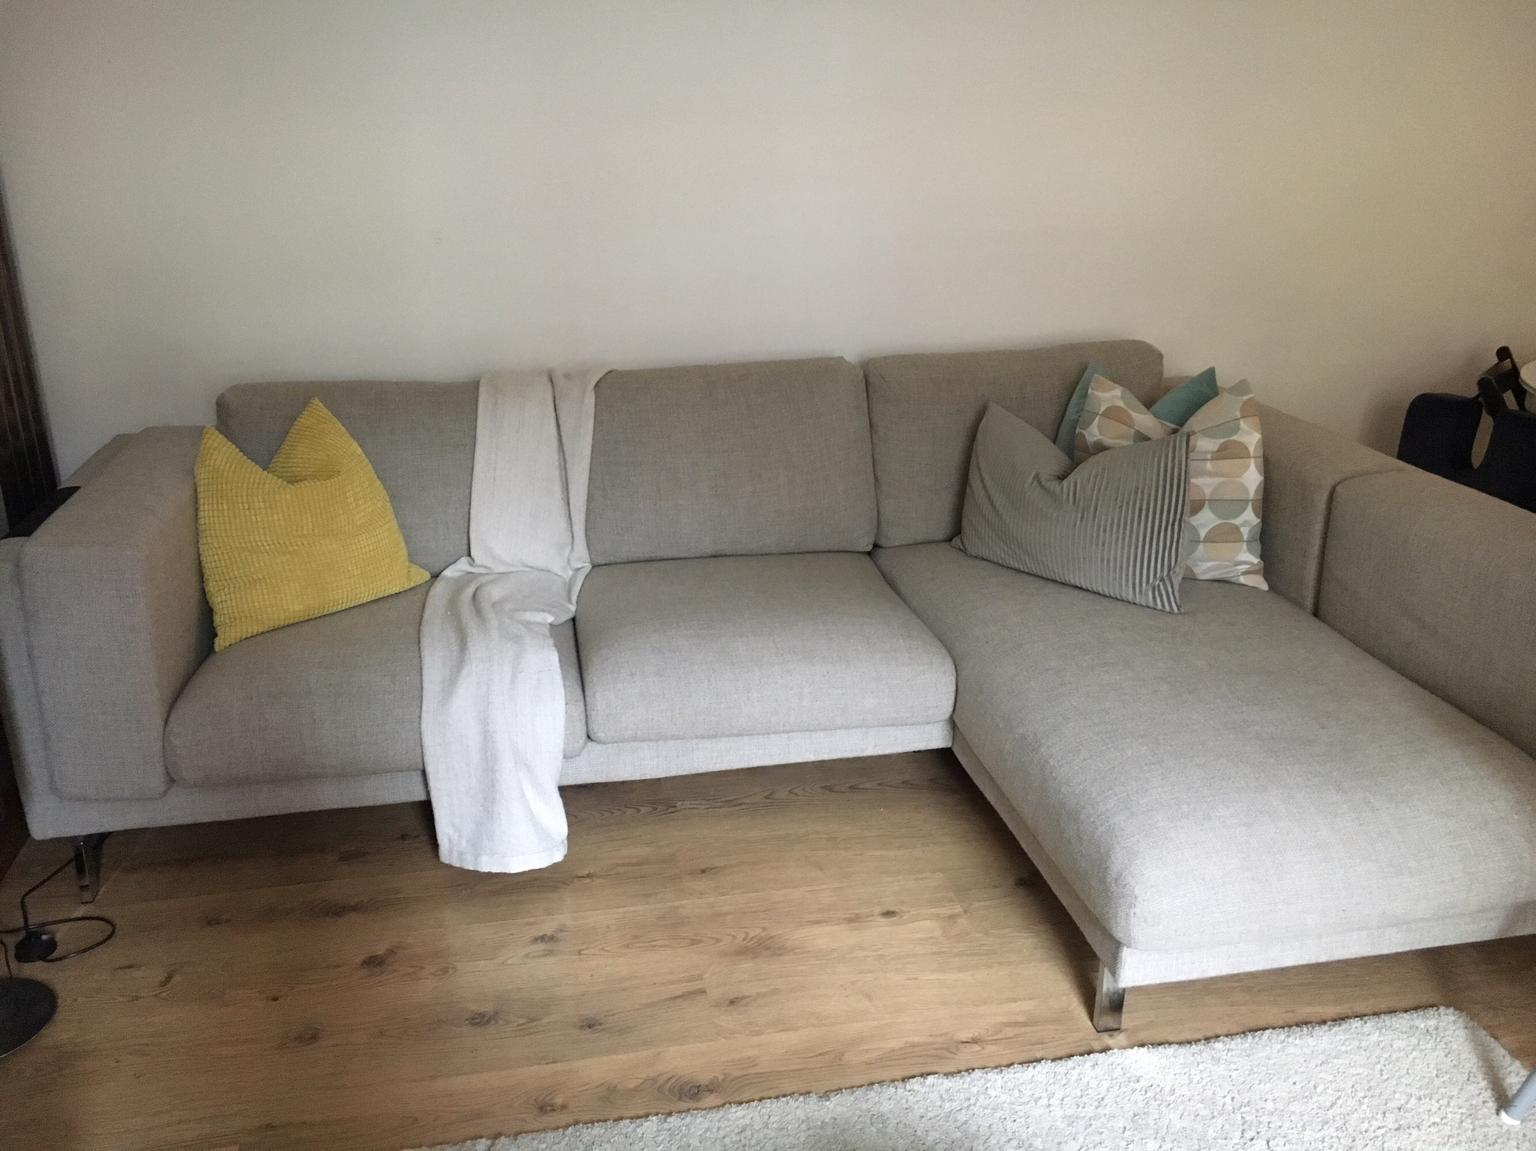 Ikea Nockeby Corner Sofa In Light Grey Wood In Wc1h London